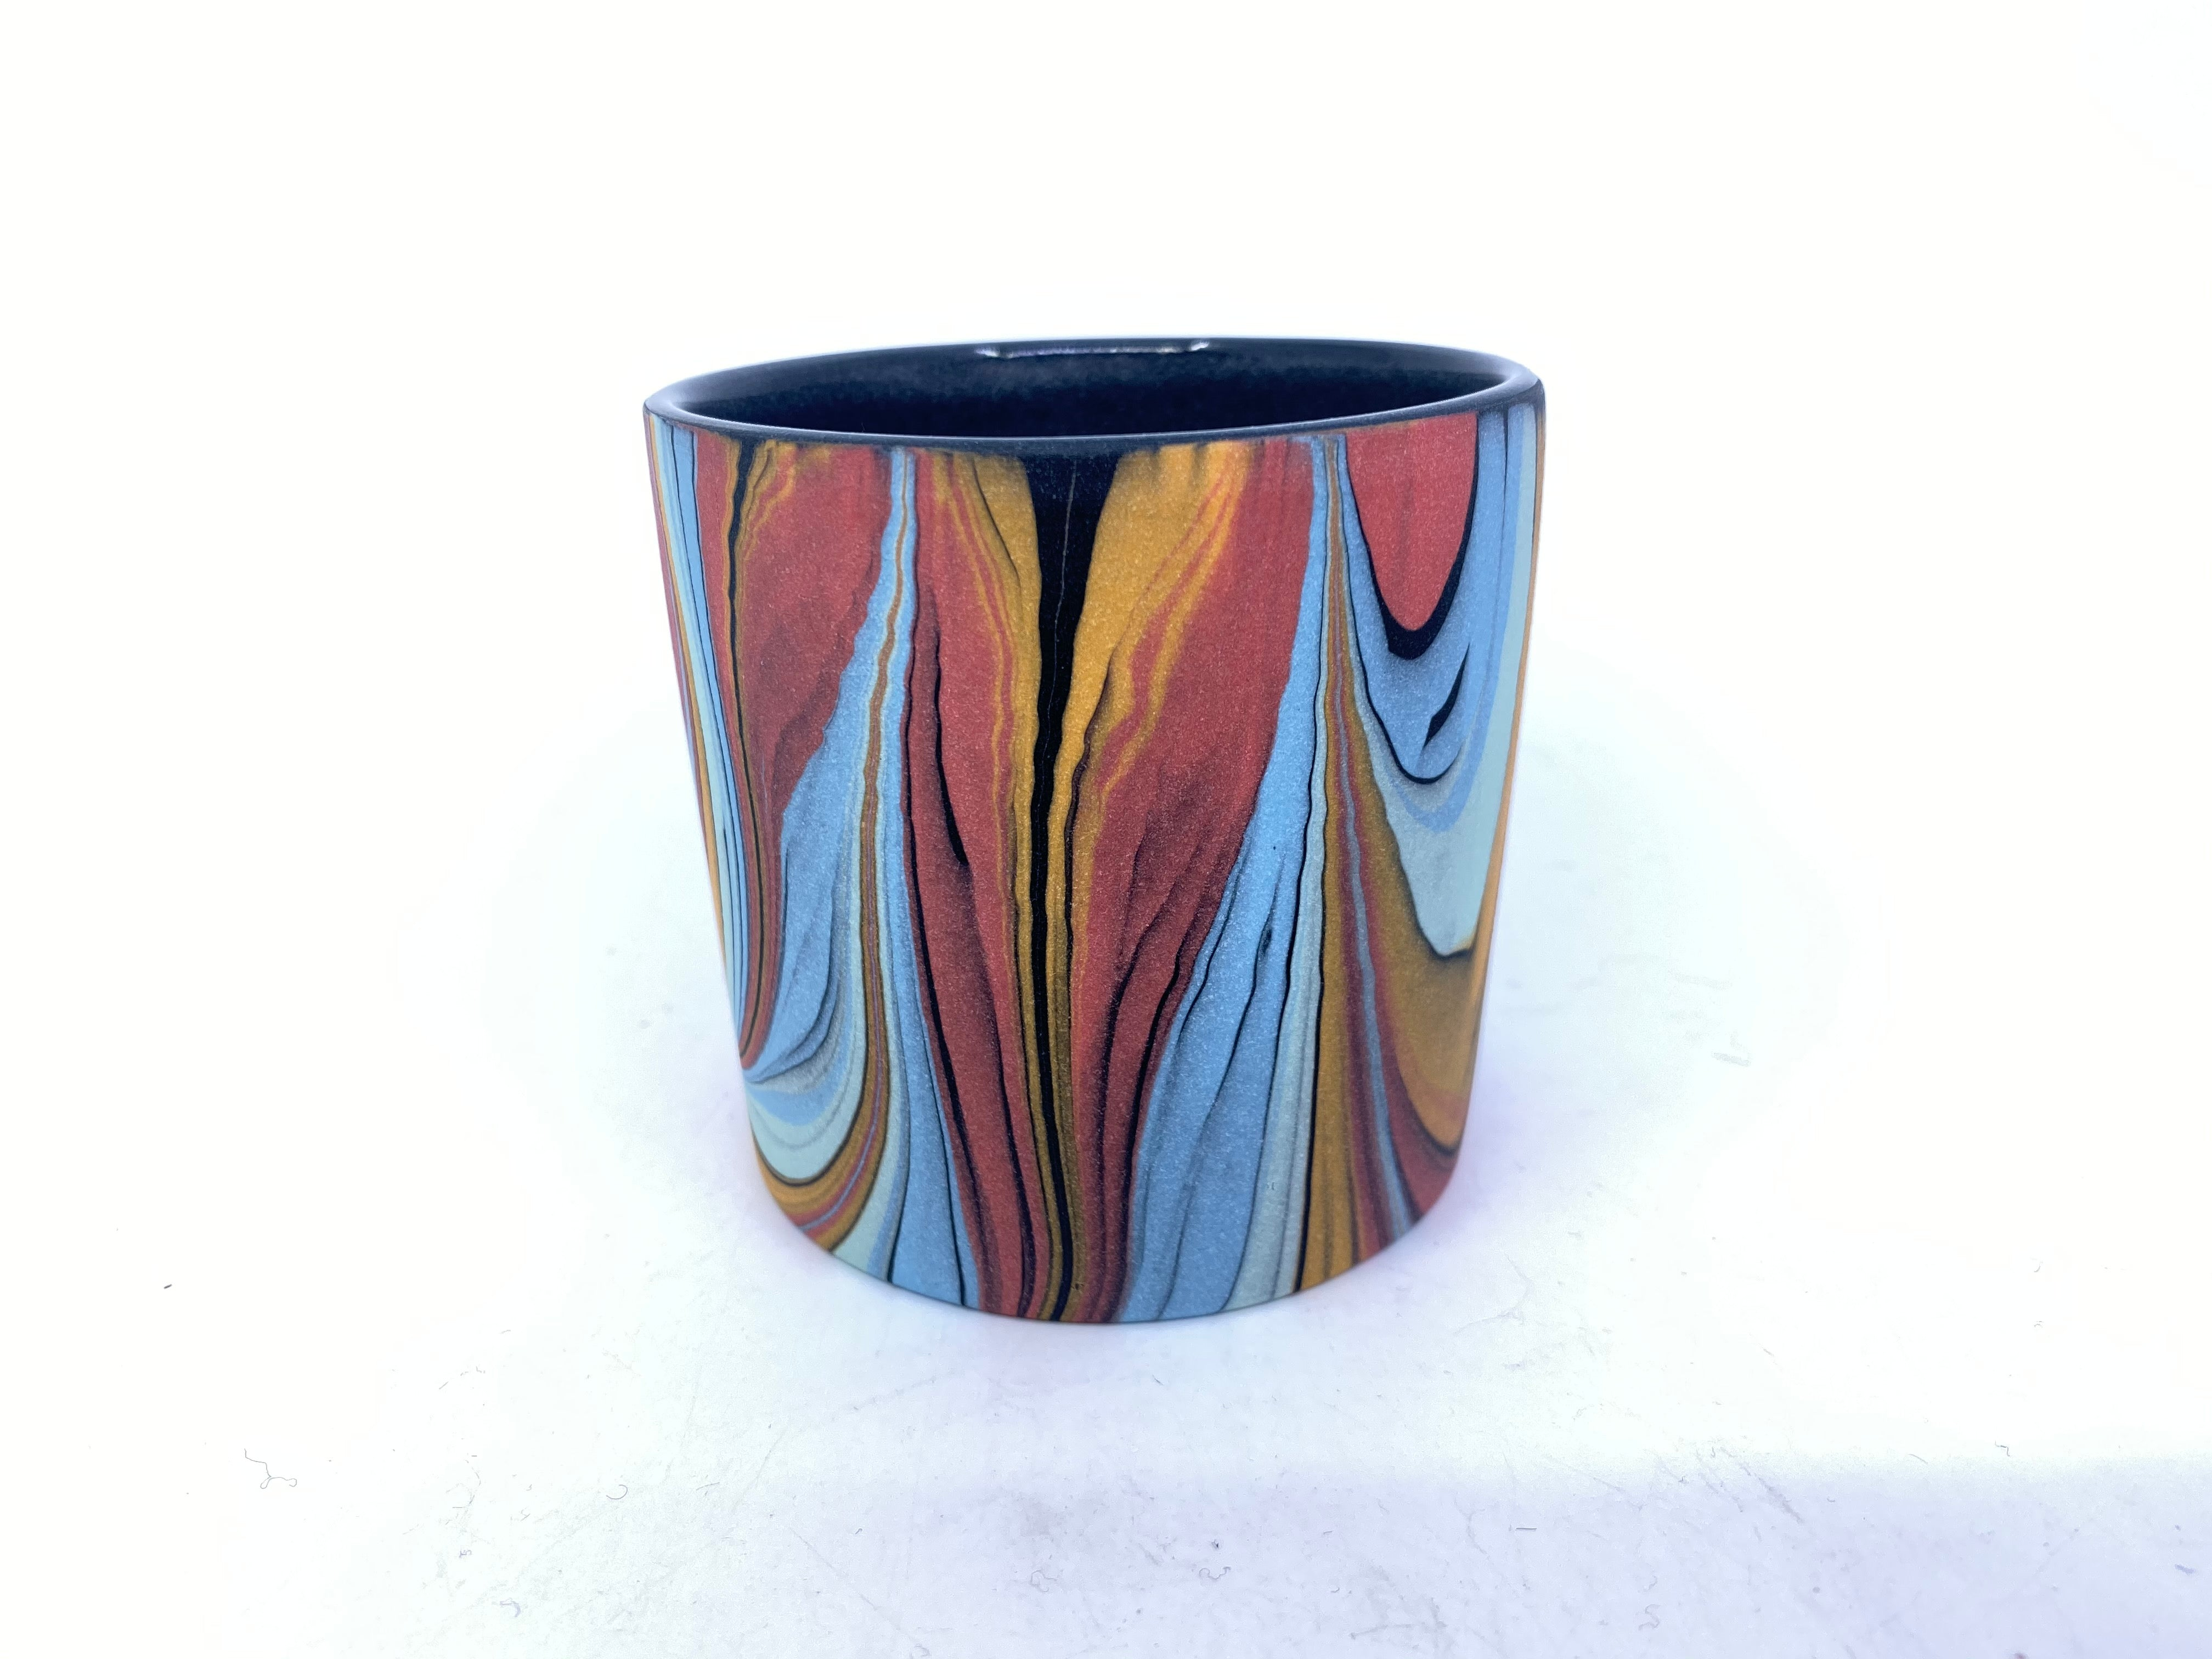 Feathers marbled tumbler